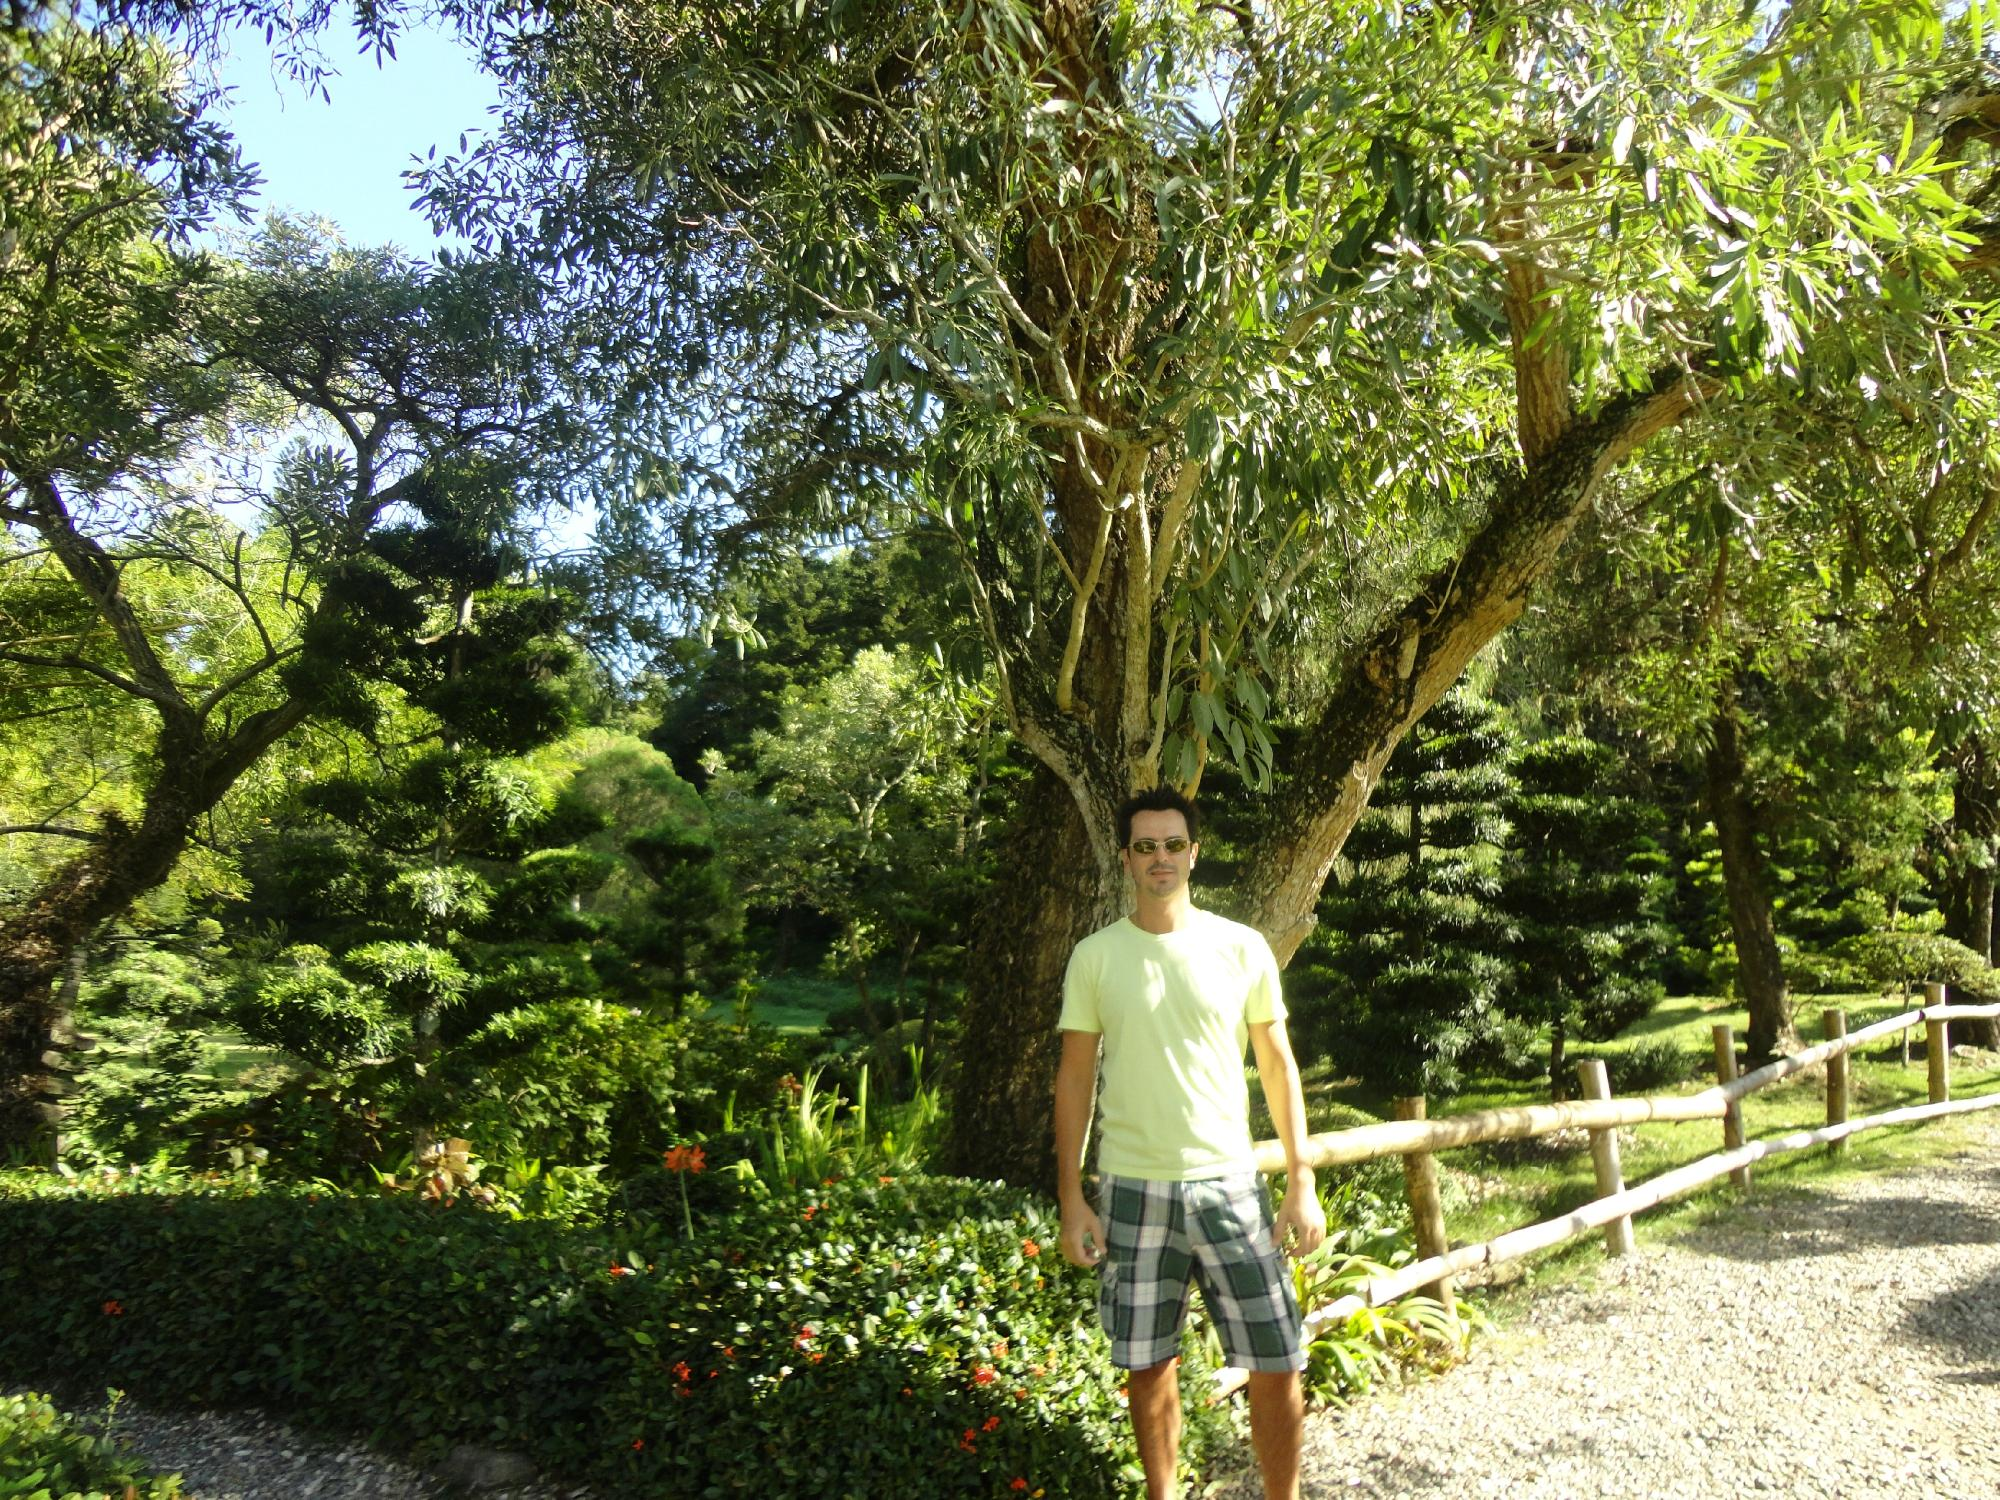 National botanical garden santo domingo dominican for O jardin ideal route de montauban bessieres